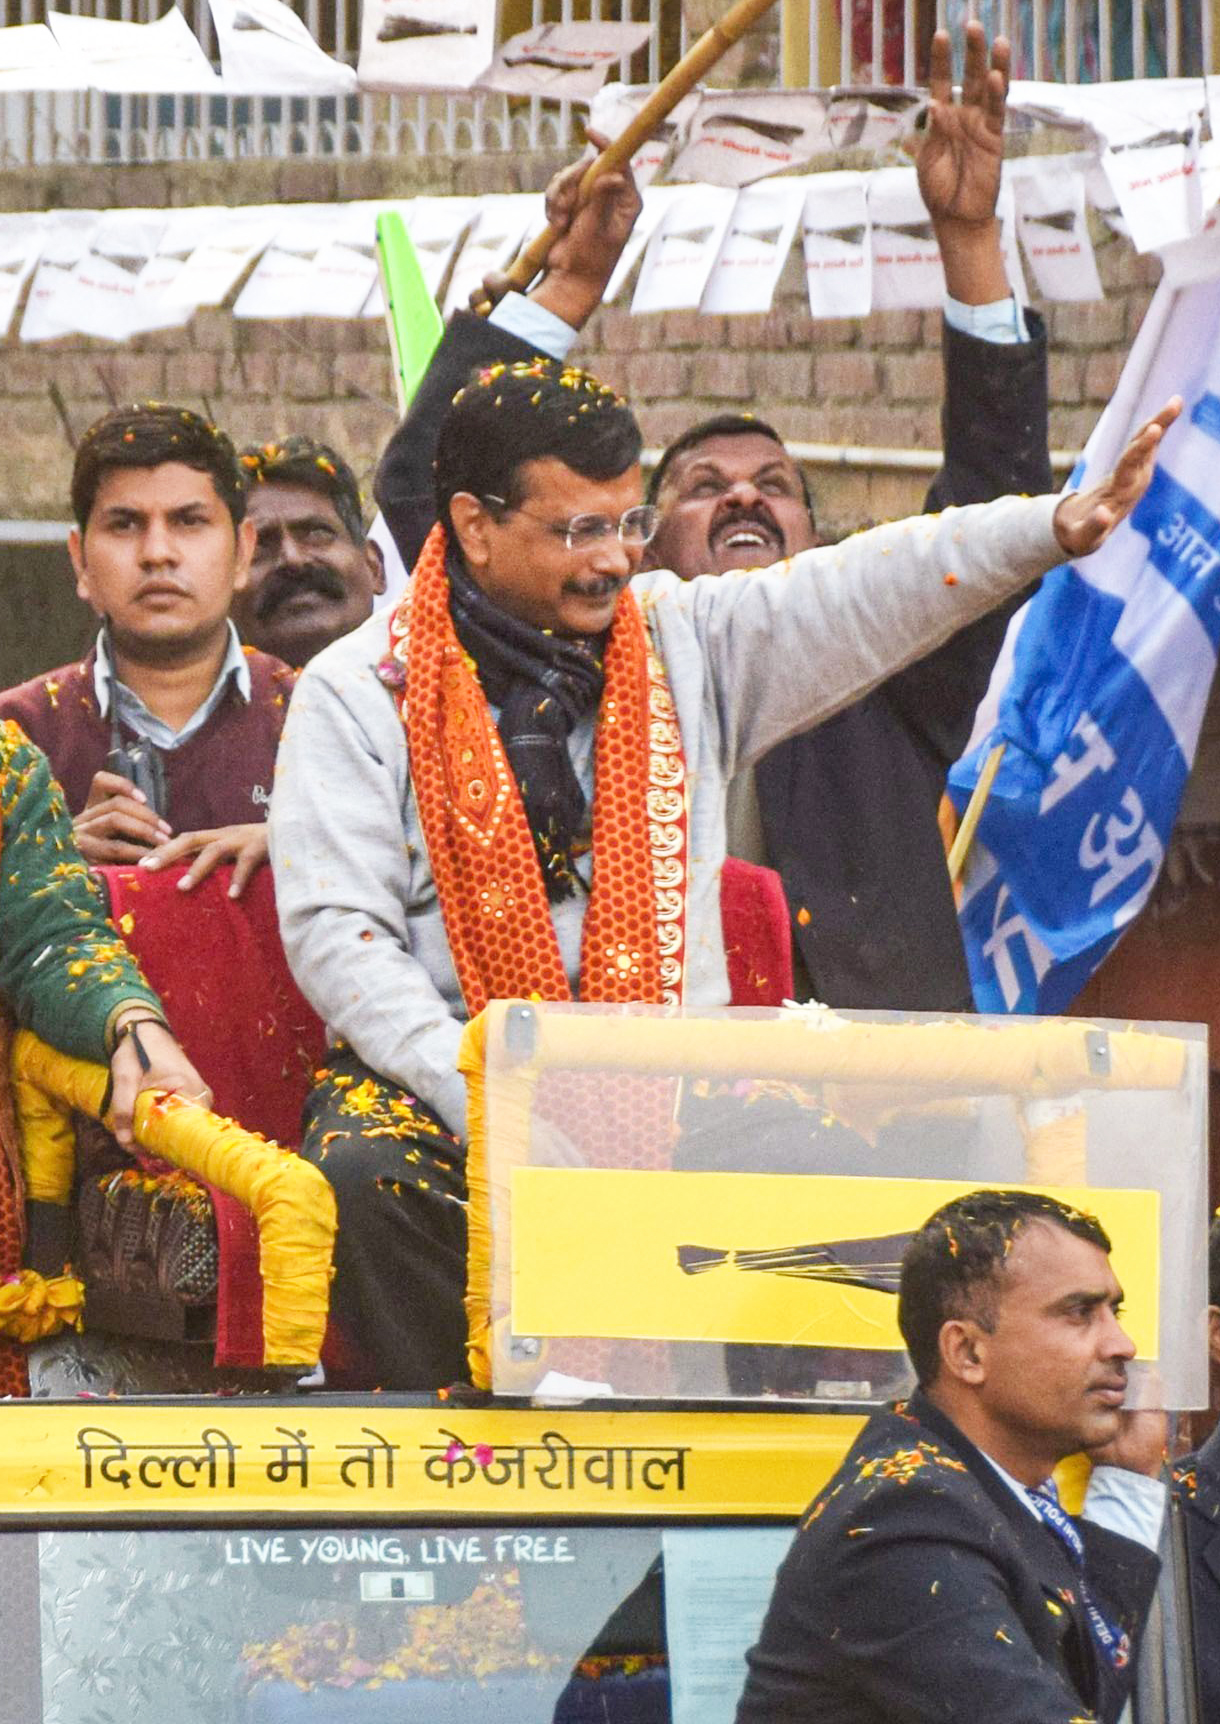 Delhi Chief Minister Arvind Kejriwal during an election campaign roadshow ahead of the State Assembly elections, at Patparganj in New Delhi, Monday, February 3, 2020.